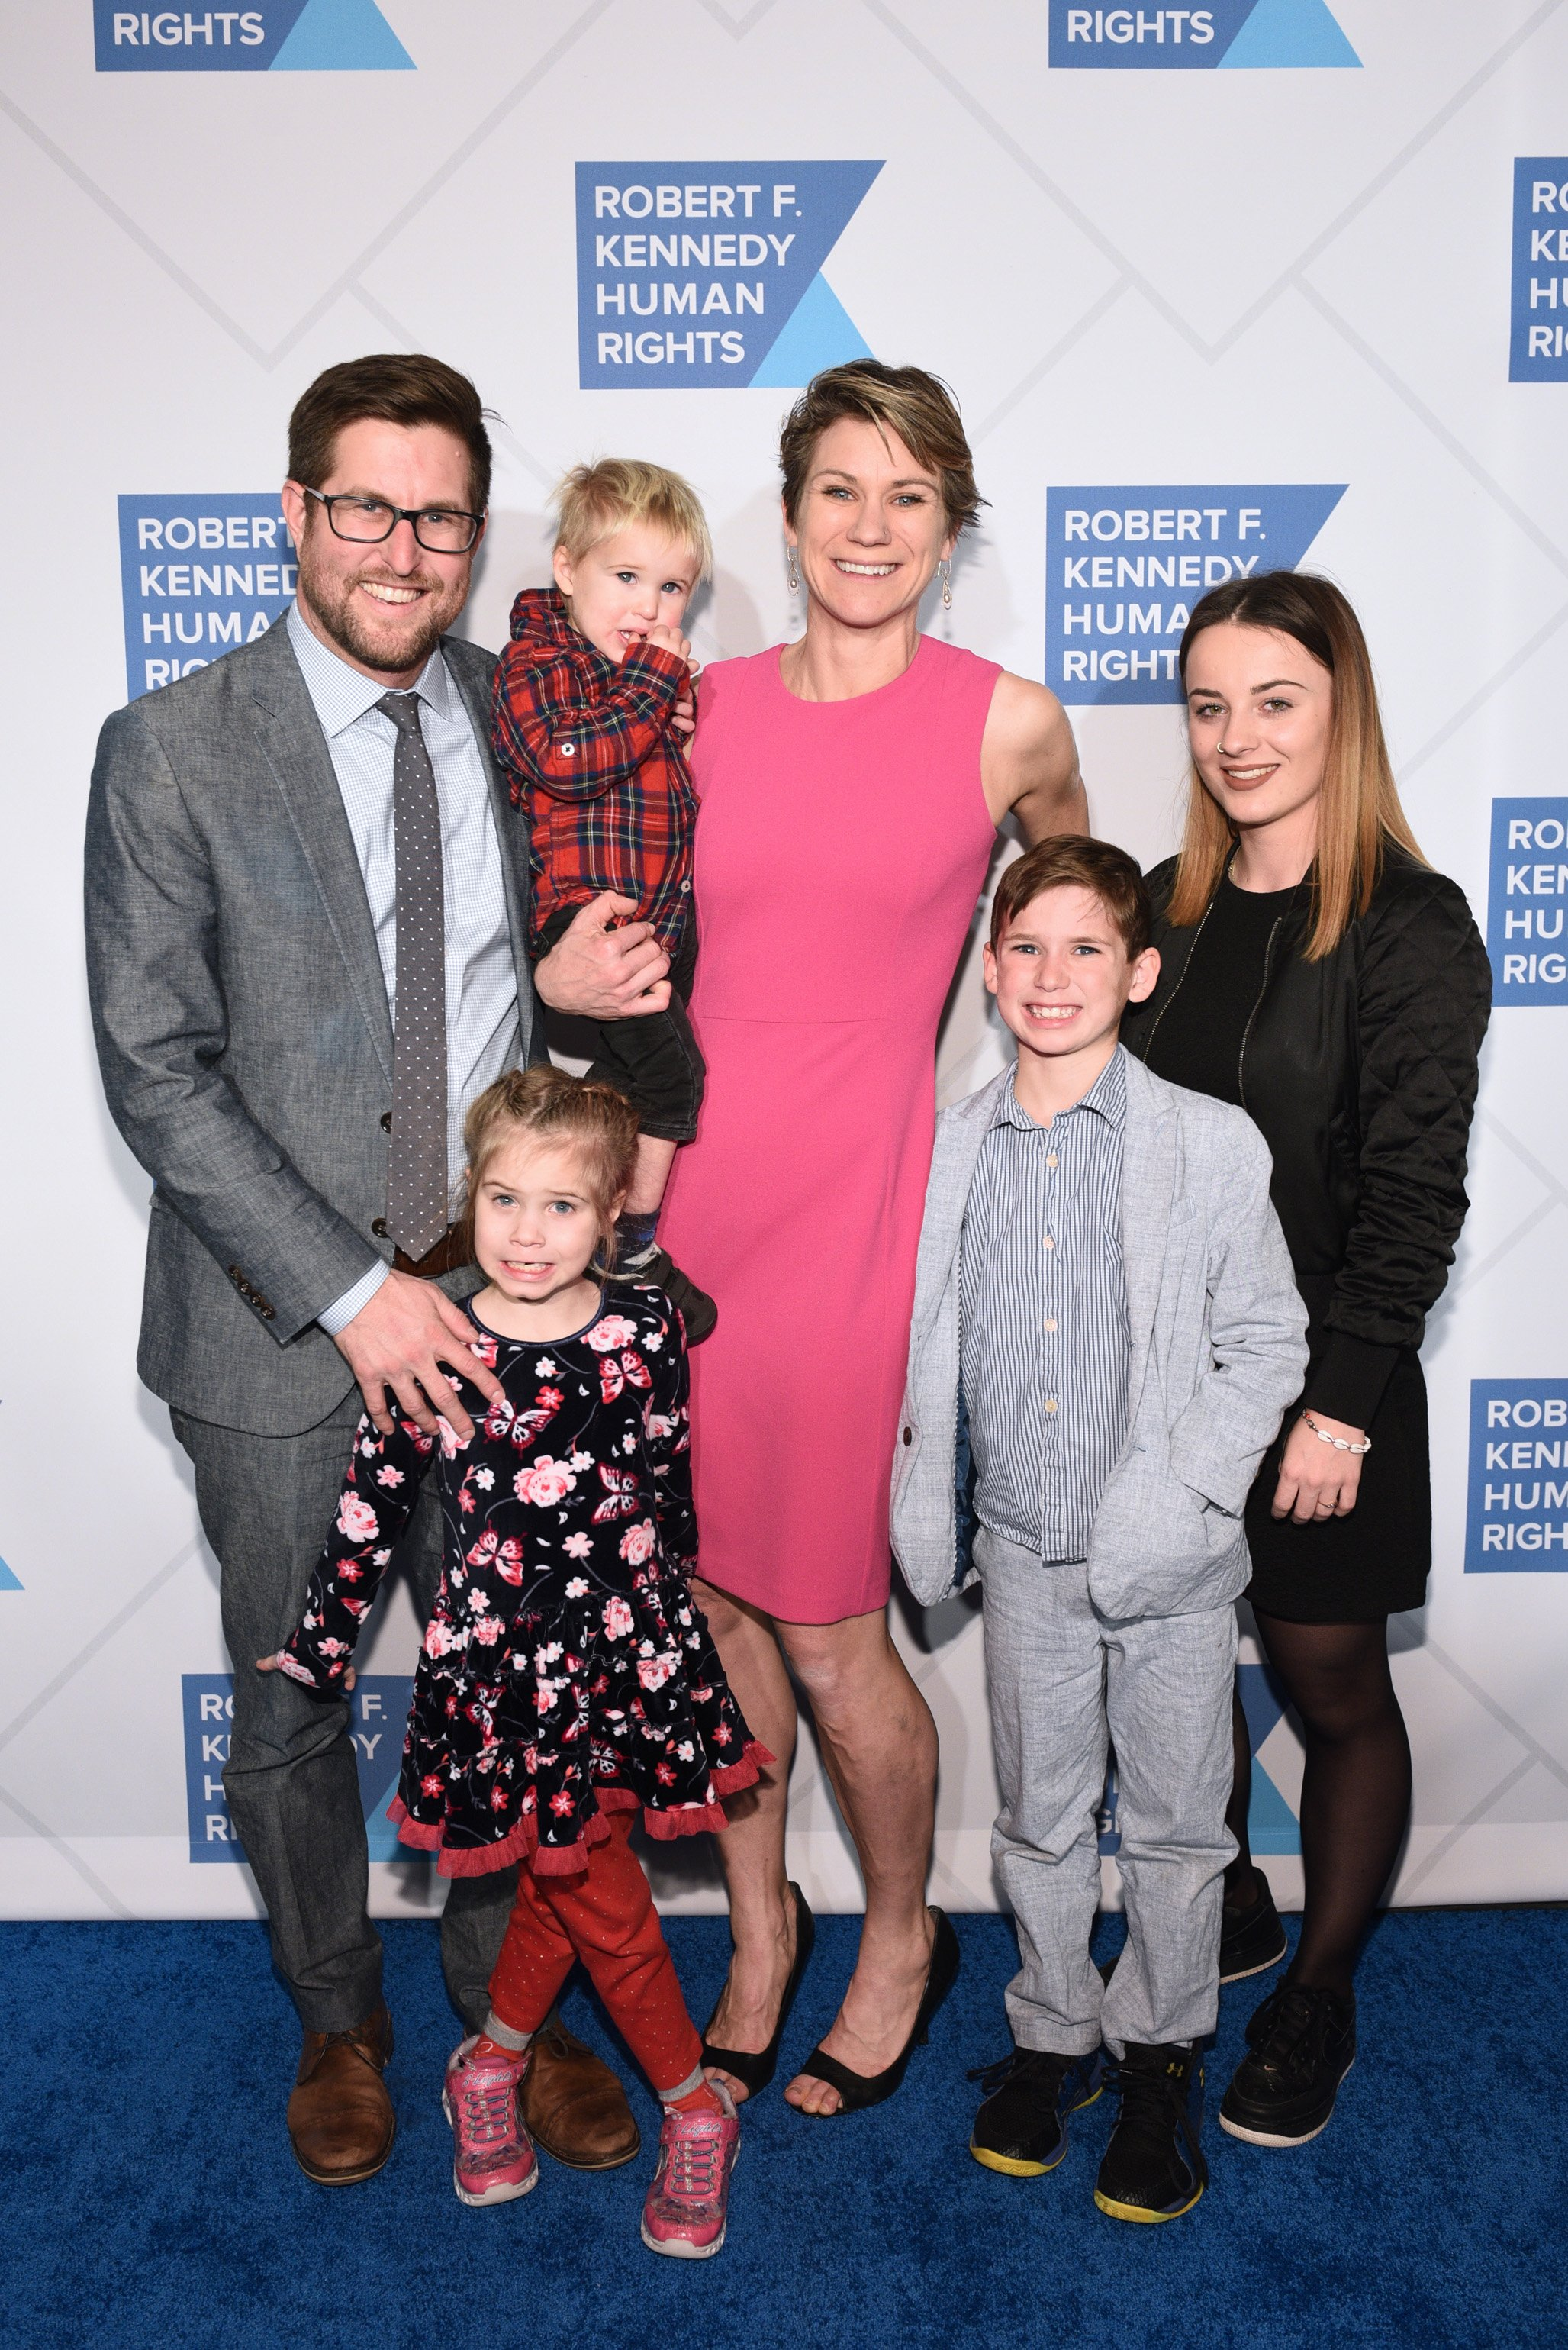 David McKean, Maeve Kennedy Townsend Mckean and family attend the Robert F. Kennedy Human Rights Hosts 2019 Ripple Of Hope Gala & Auction on December 12, 2019, in New York City. | Source: Getty Images.